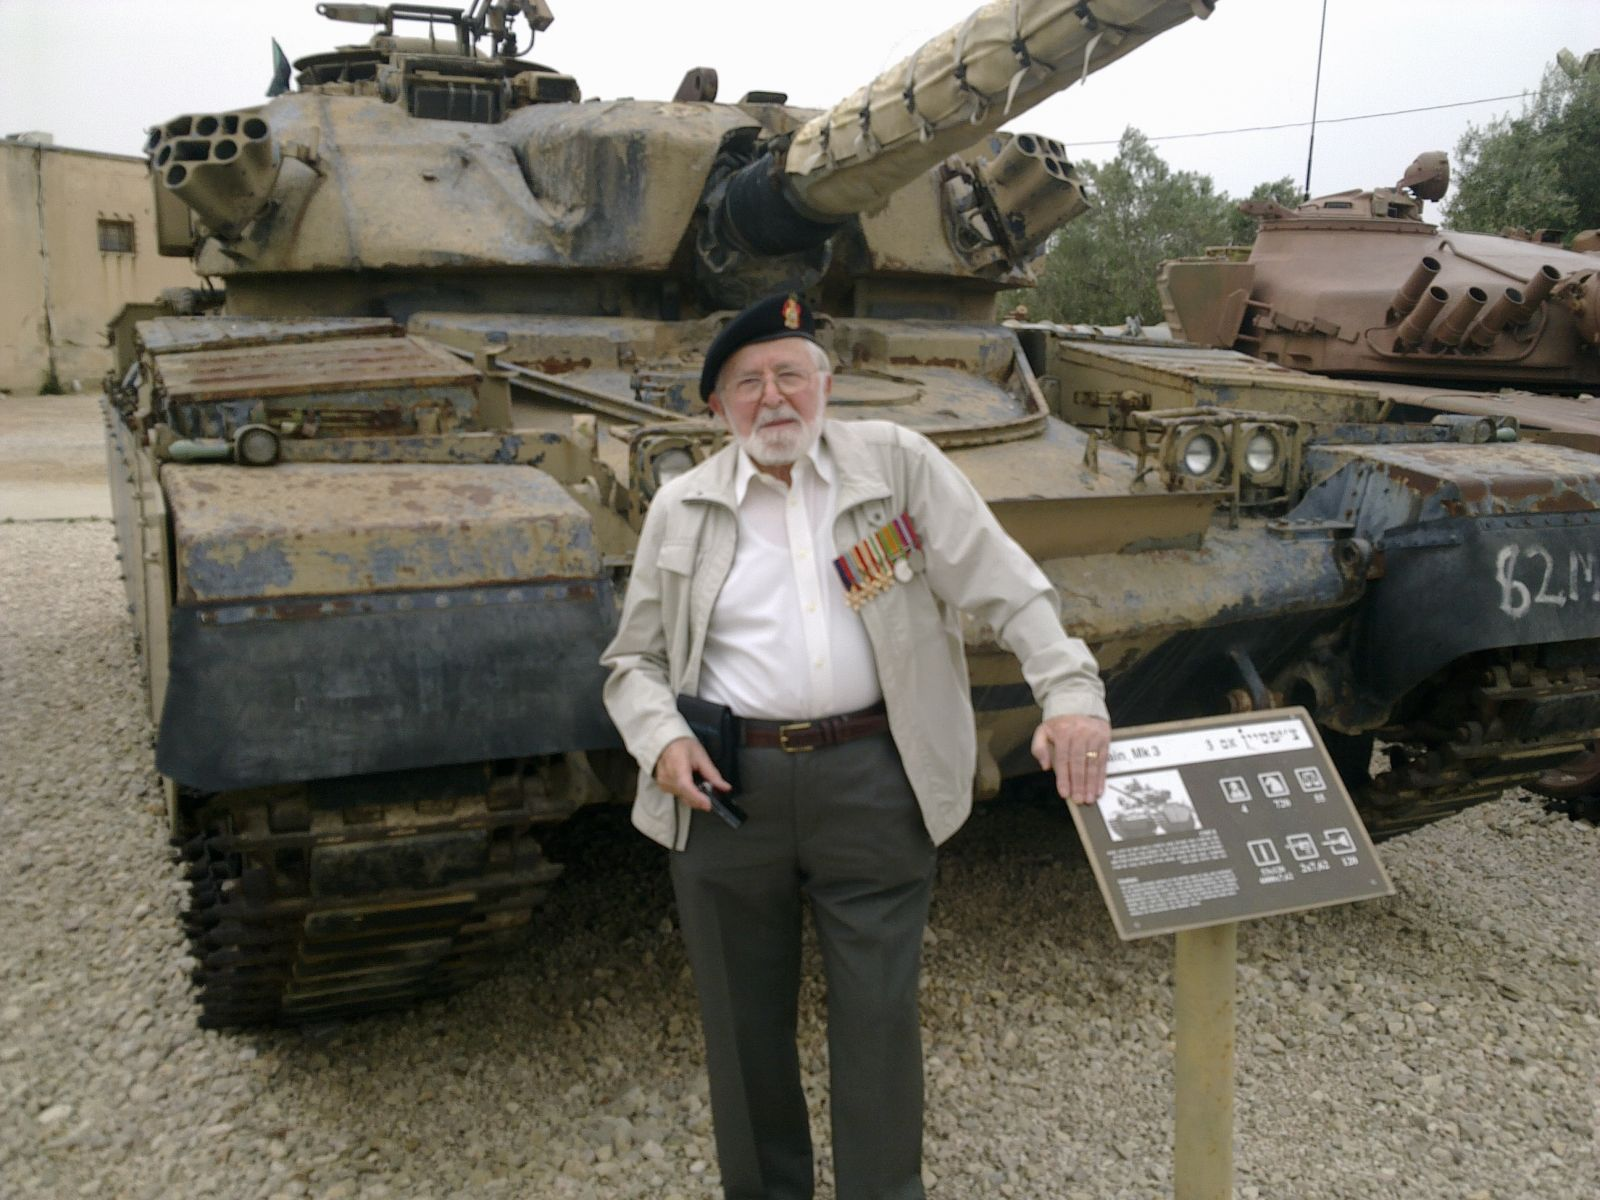 Ron In front of Chieftan tank.